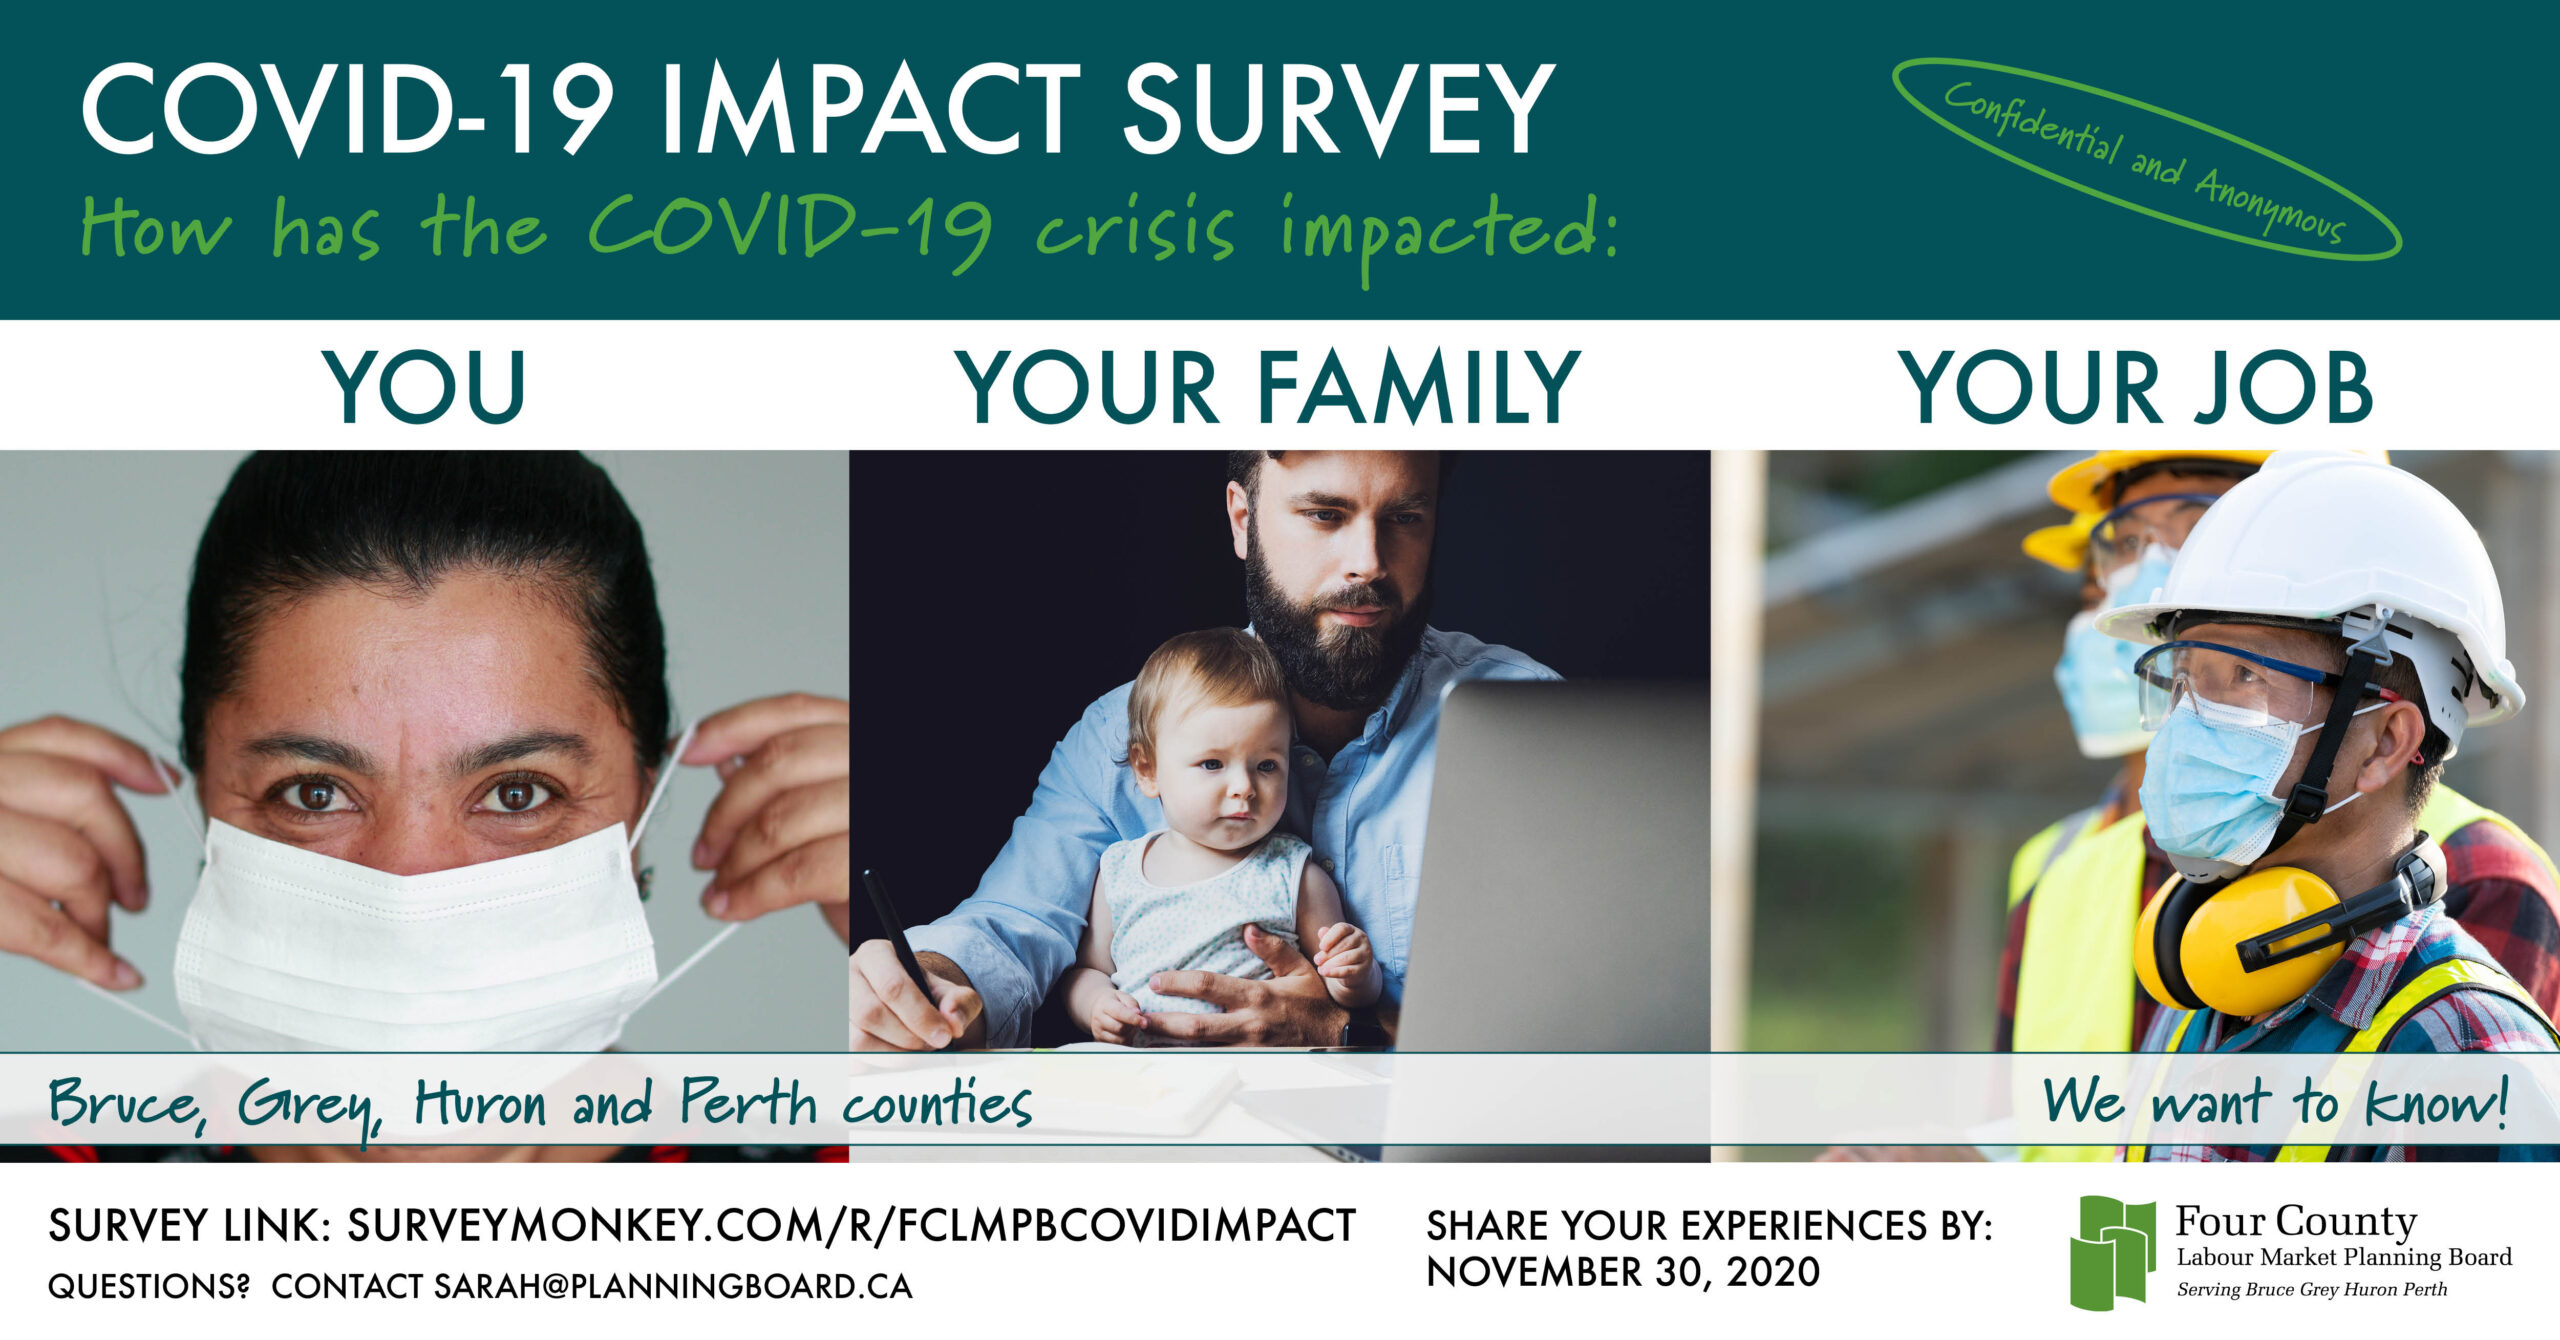 COVID-19 Impact Survey How has the COVID-19 crisis impacted: You, Your Family, Your Job